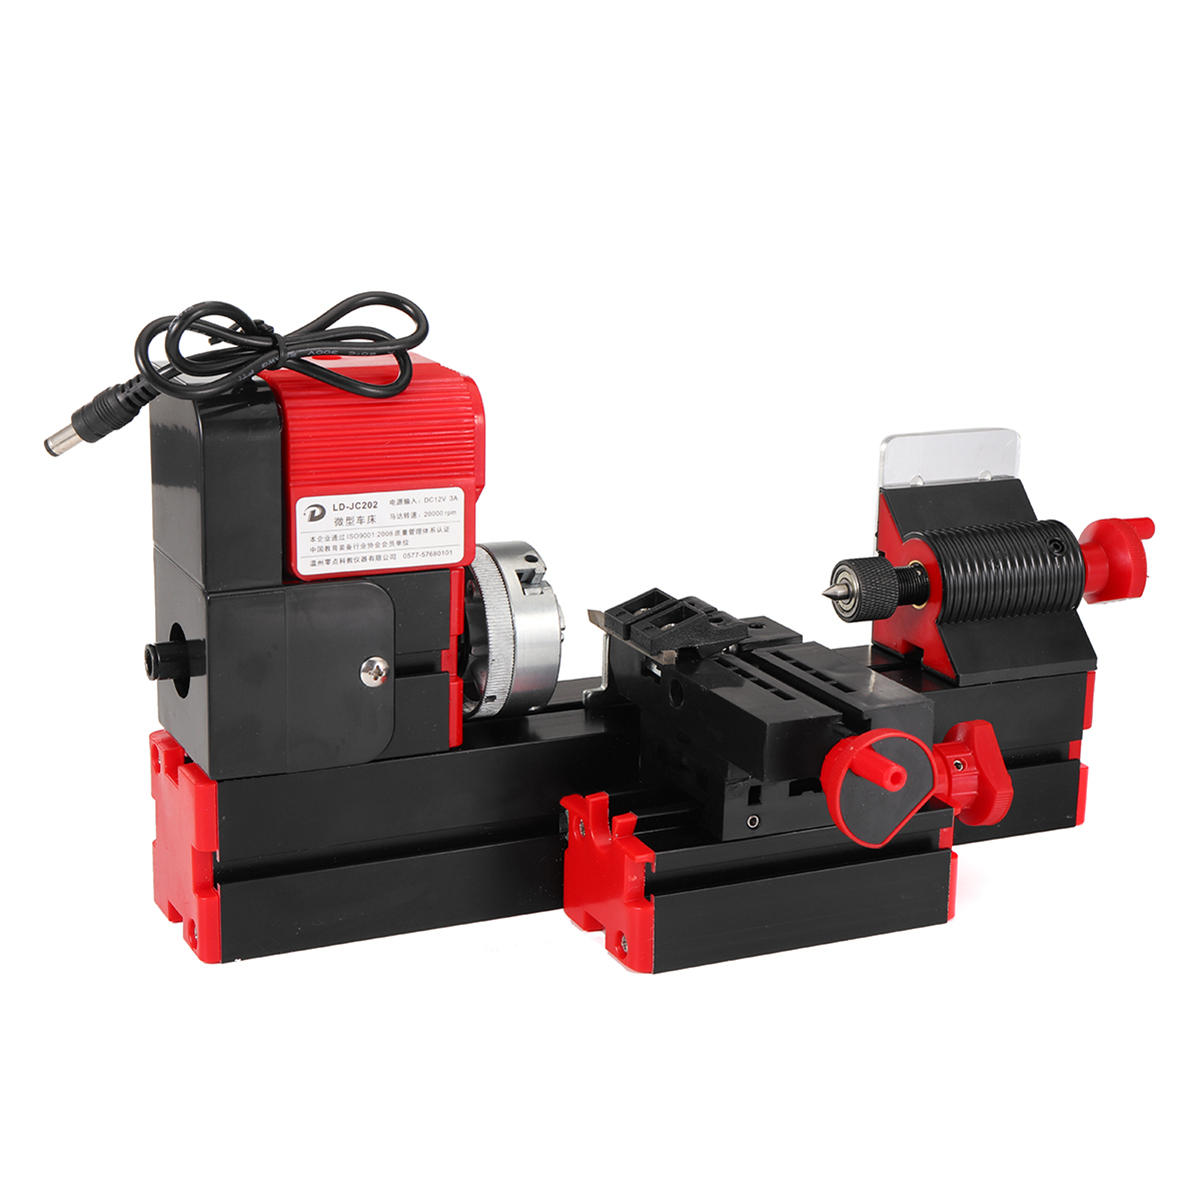 Dc12v 3a 36w Mini Lathe Milling Machine Bench Drill Diy Woodworking